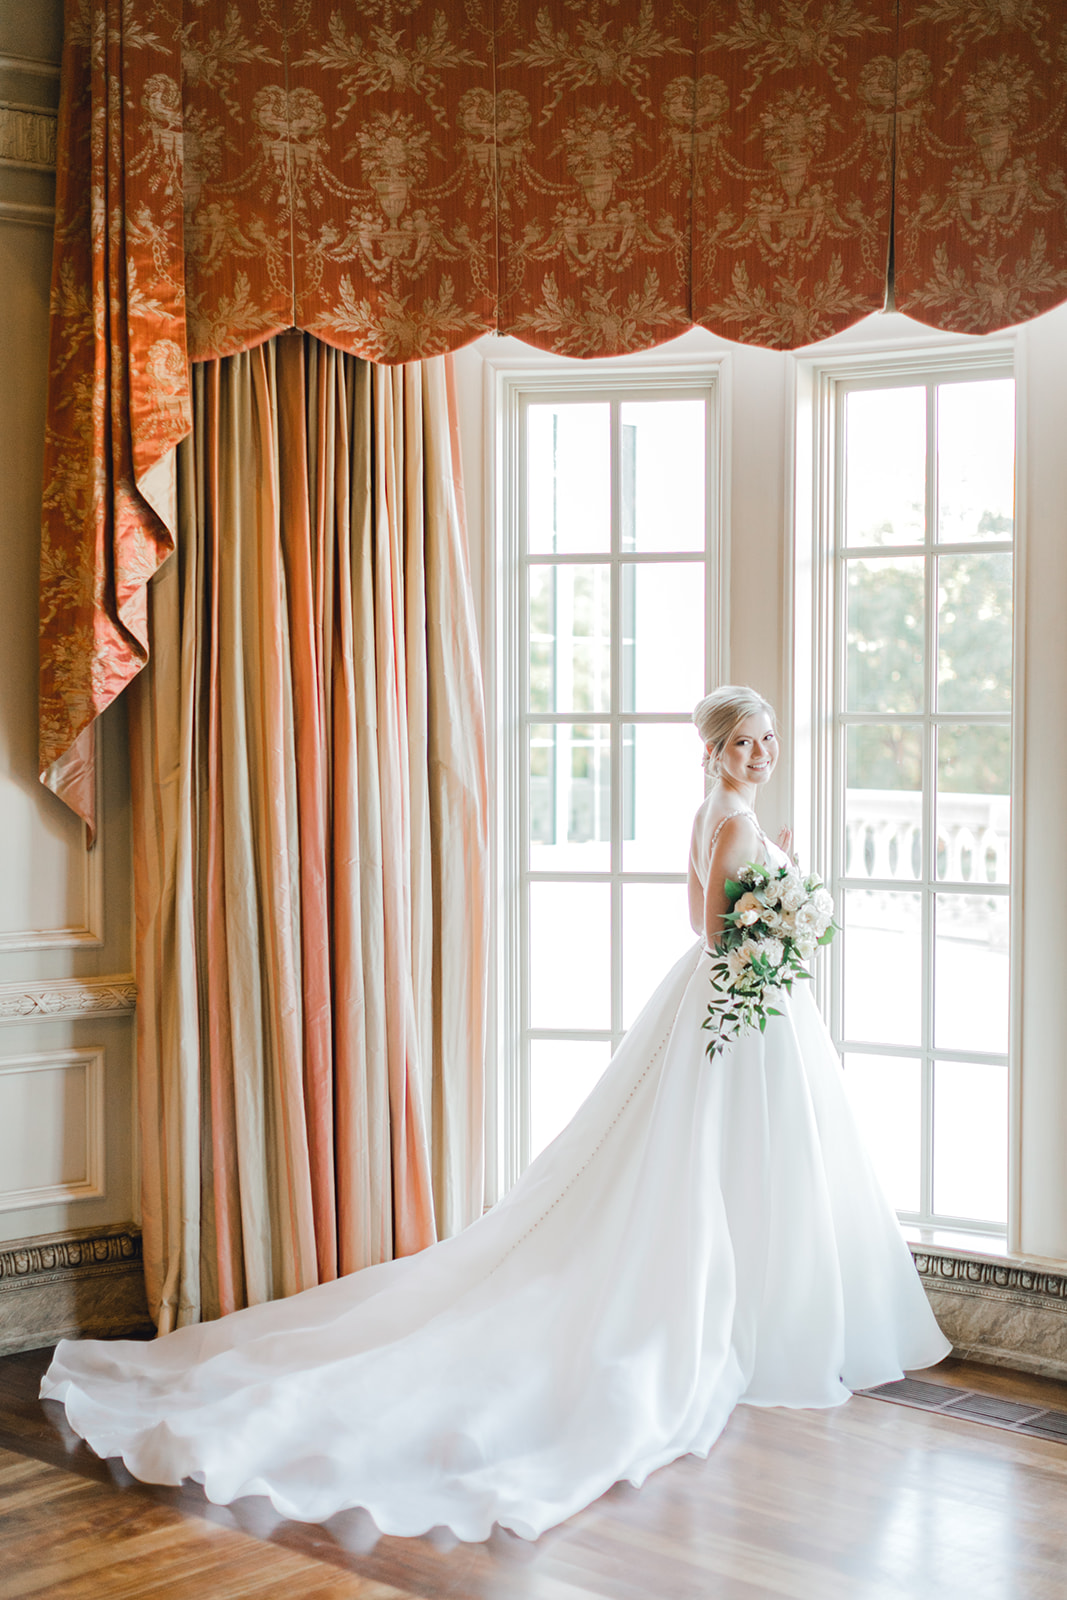 Bridal portrait: Timeless Wedding at The Olana featured on Alexa Kay Events!